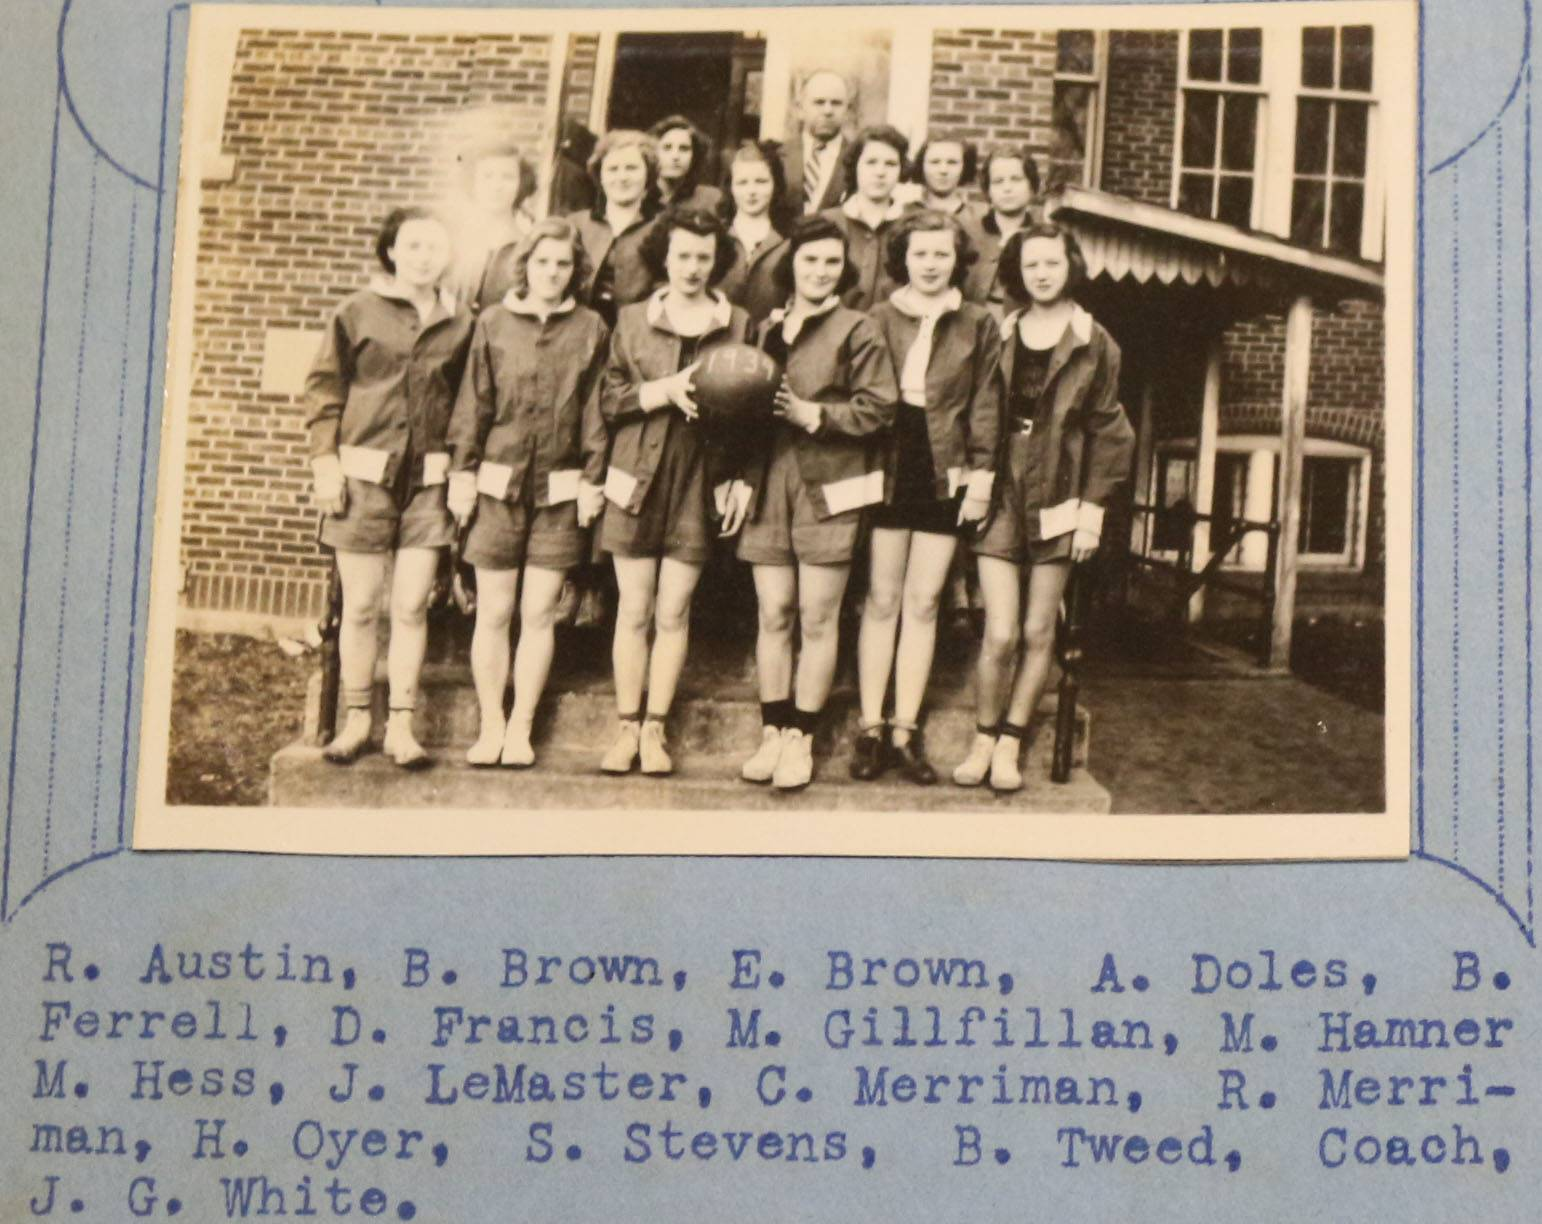 1939 Girl's Basketball